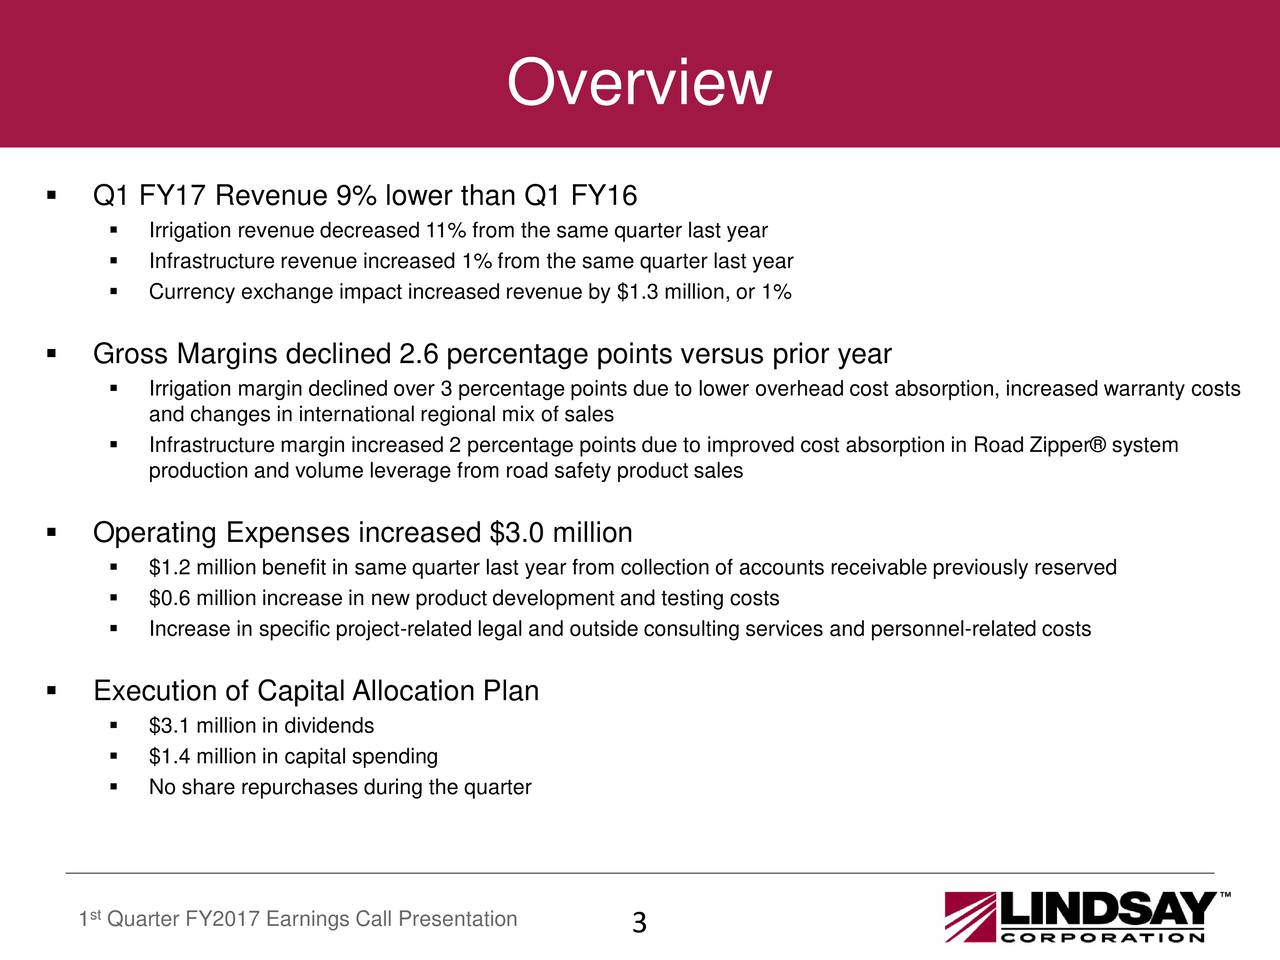 Q1 FY17 Revenue 9% lower than Q1 FY16 Irrigation revenue decreased 11% from the same quarter last year Infrastructure revenue increased 1% from the same quarter last year Currency exchange impact increased revenue by $1.3 million, or 1% Gross Margins declined 2.6 percentage points versus prior year Irrigation margin declined over 3 percentage points due to lower overhead cost absorption, increased warranty costs and changes in international regional mix of sales Infrastructure margin increased 2 percentage points due to improved cost absorption in Road Zipper system production and volume leverage from road safety product sales Operating Expenses increased $3.0 million $1.2 million benefit in same quarter last year from collection of accounts receivable previously reserved $0.6 million increase in new product development and testing costs Increase in specific project-related legal and outside consulting services and personnel-related costs Execution of Capital Allocation Plan $3.1 million in dividends $1.4 million in capital spending No share repurchases during the quarter st 1 Quarter FY2017 Earnings Call Presentation 3